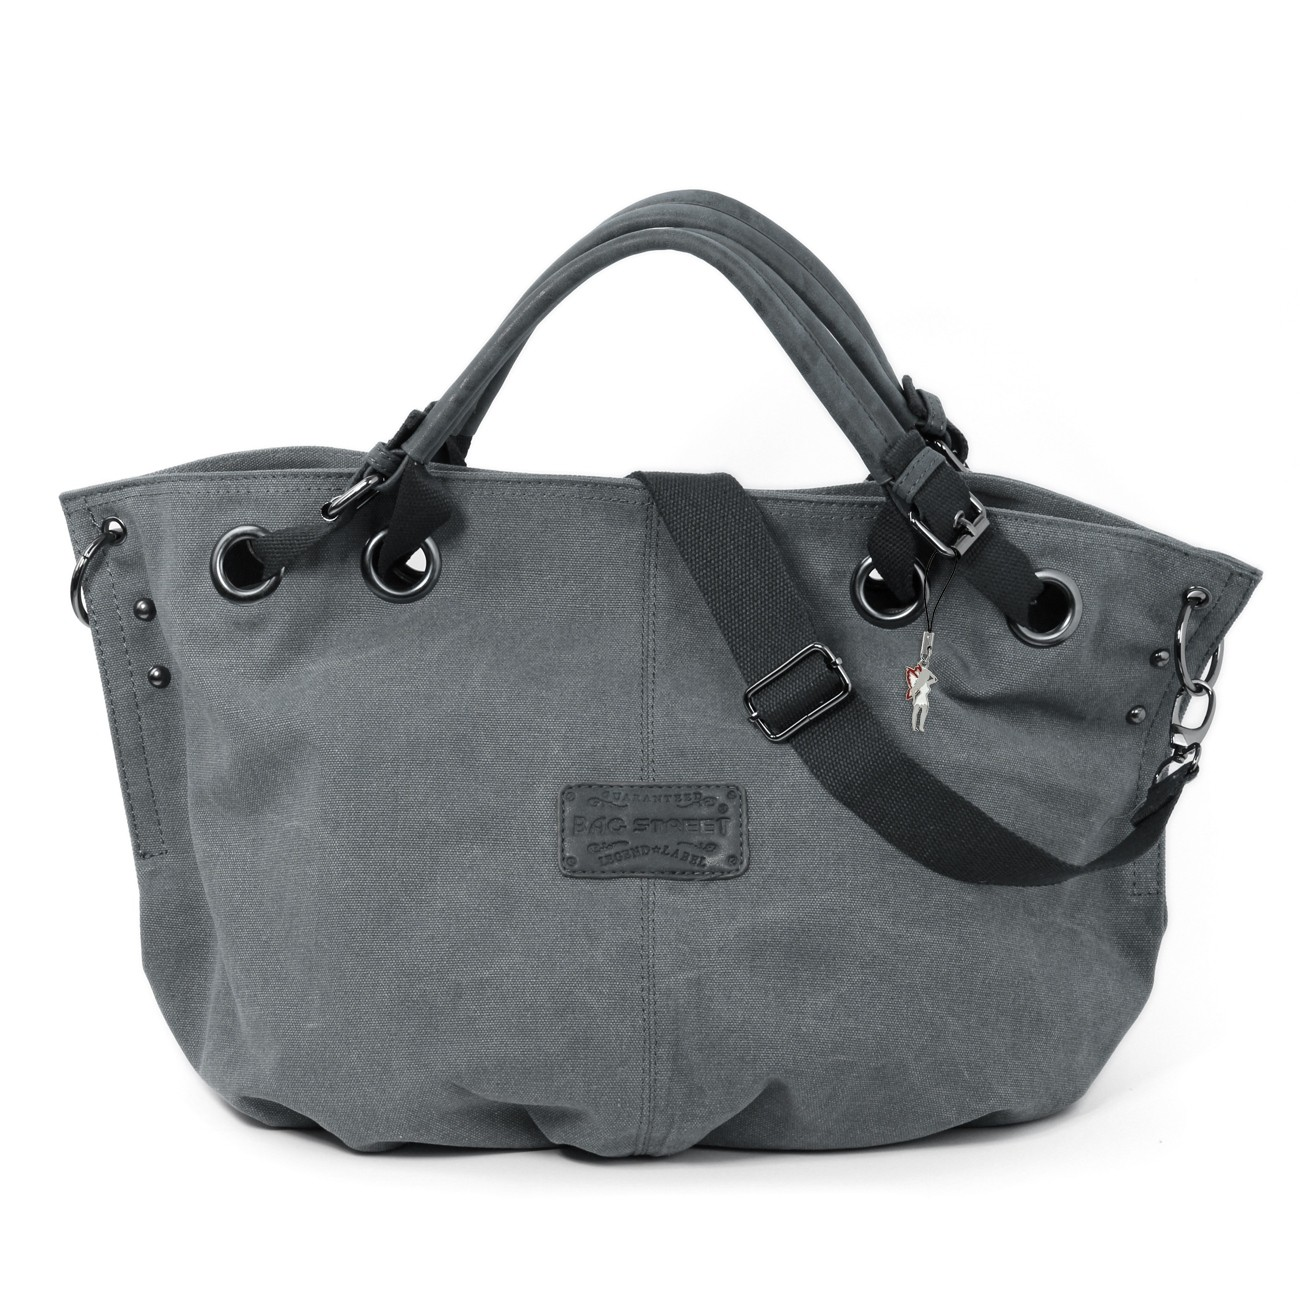 Beuteltasche Canvas grau Damen Hobo Shopper Handtasche Bag Street OTJ213K